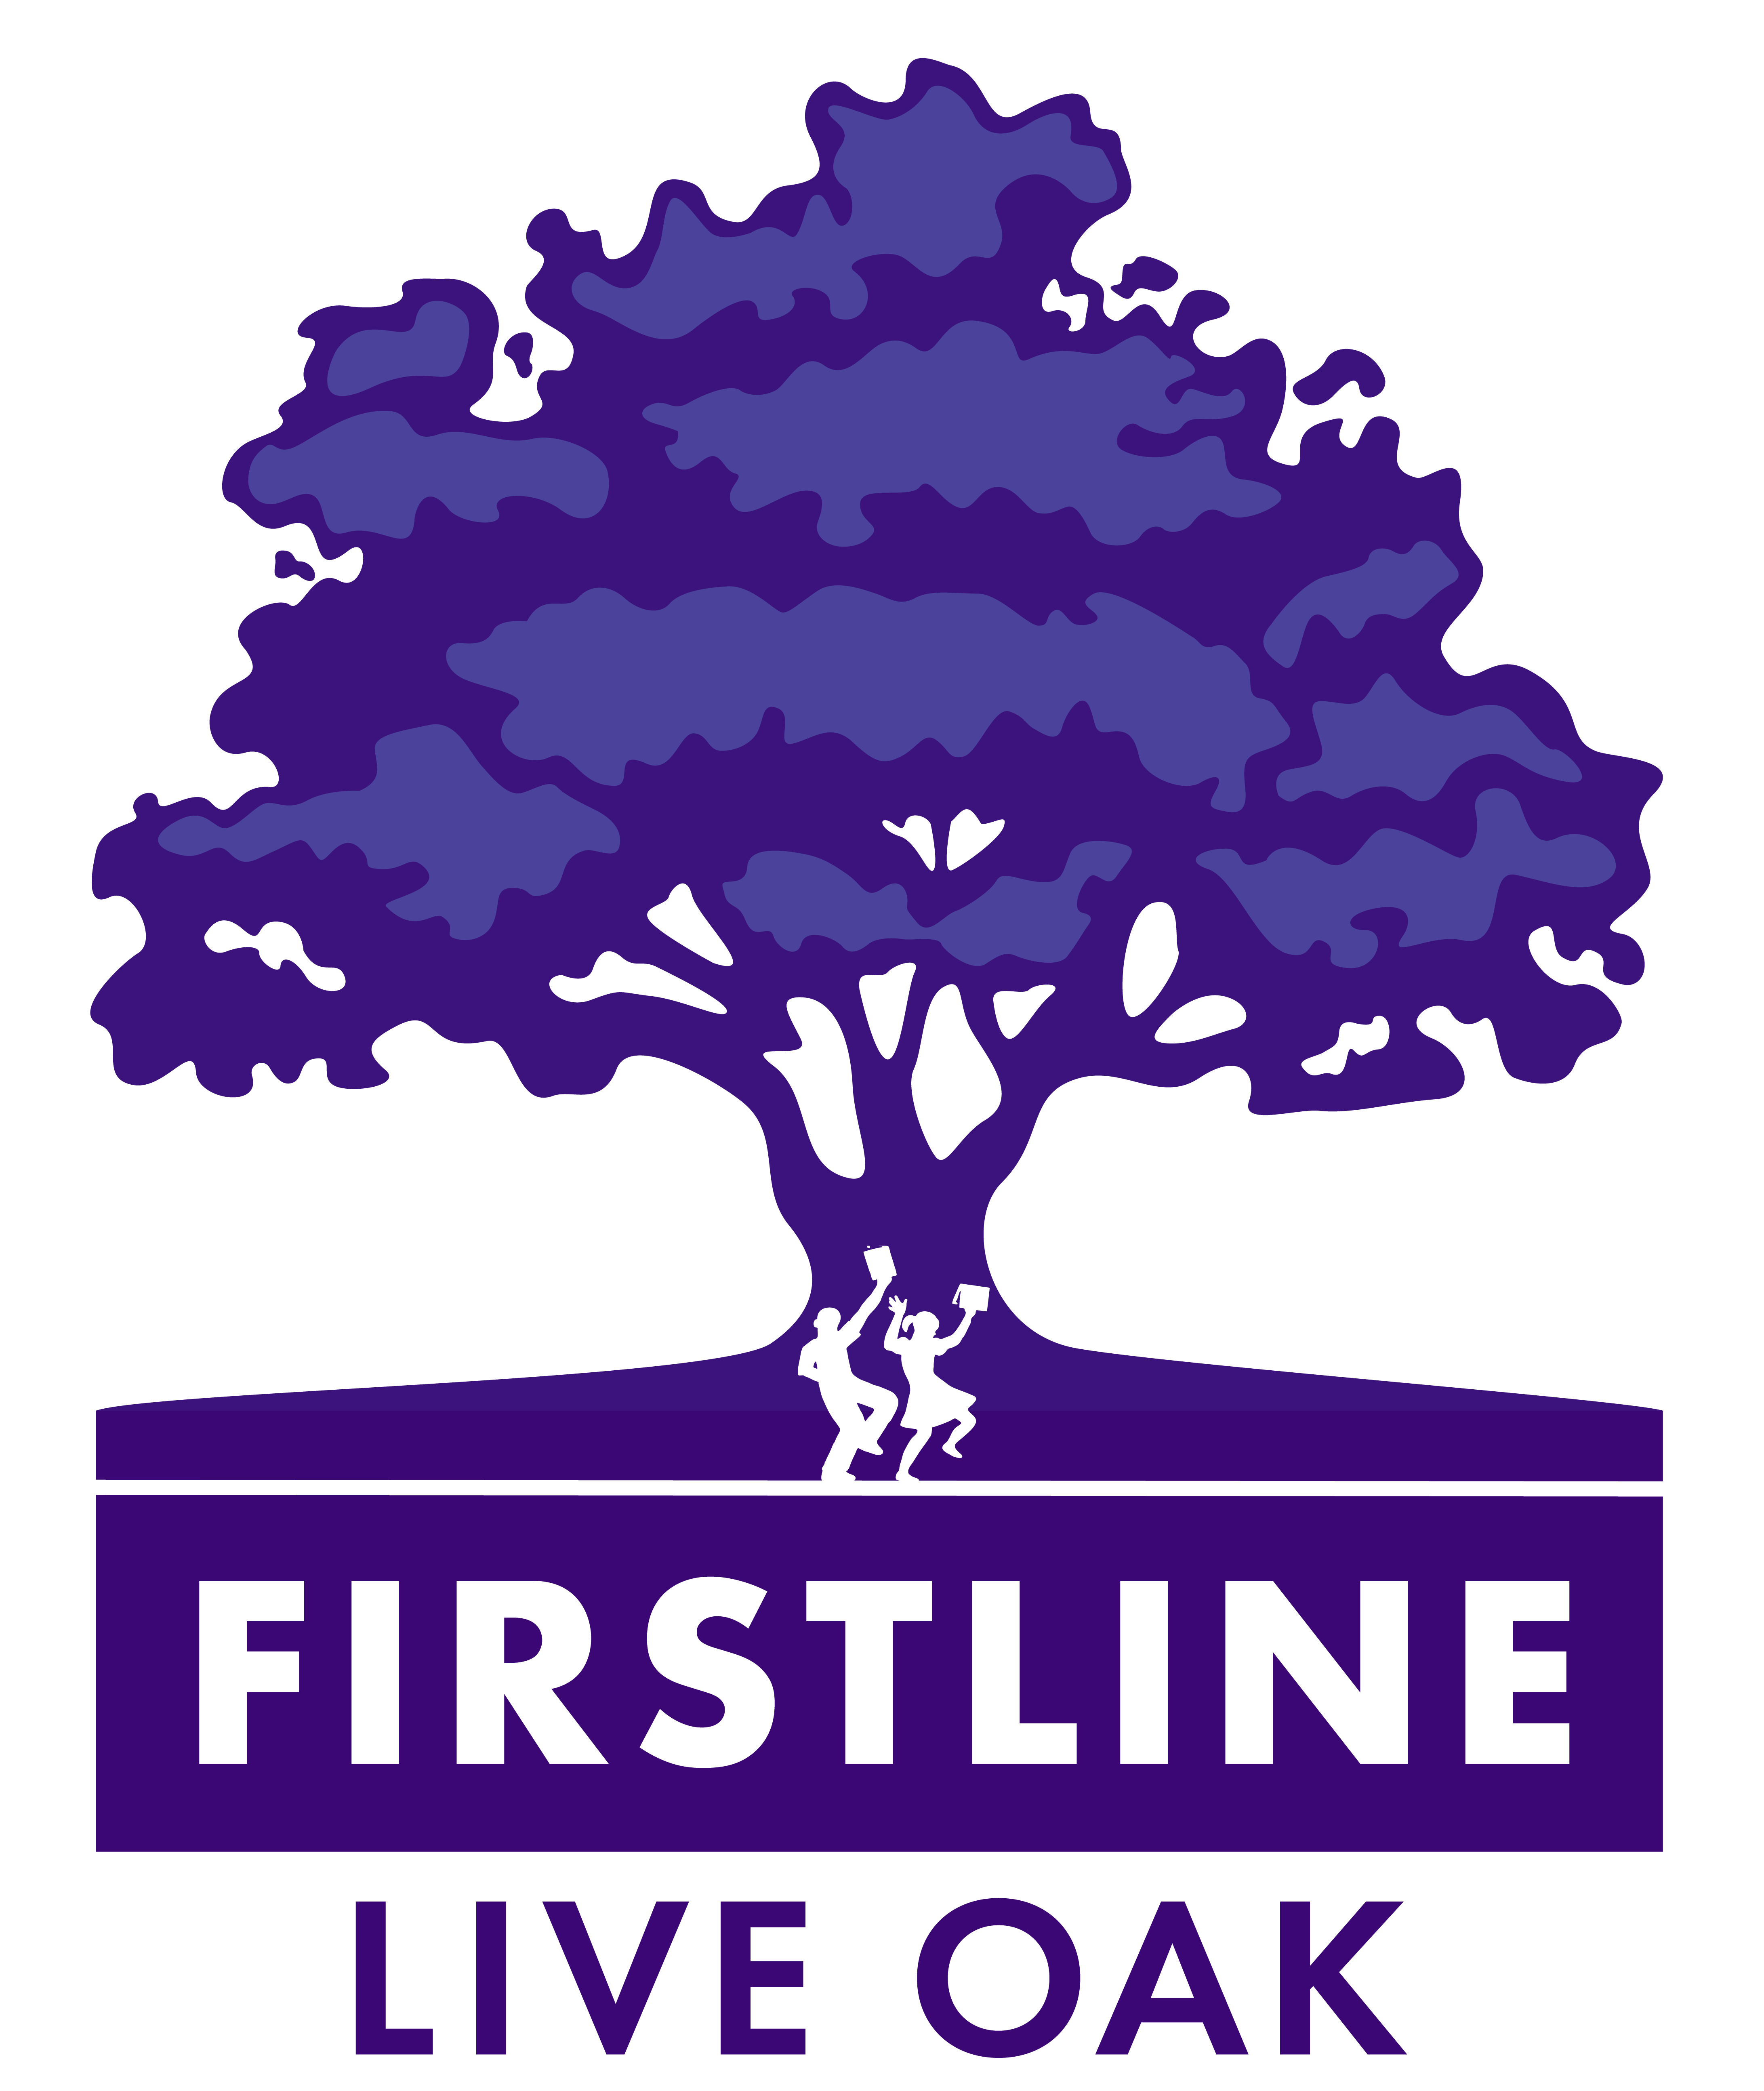 FirstLine Live Oak LOGO_Navy